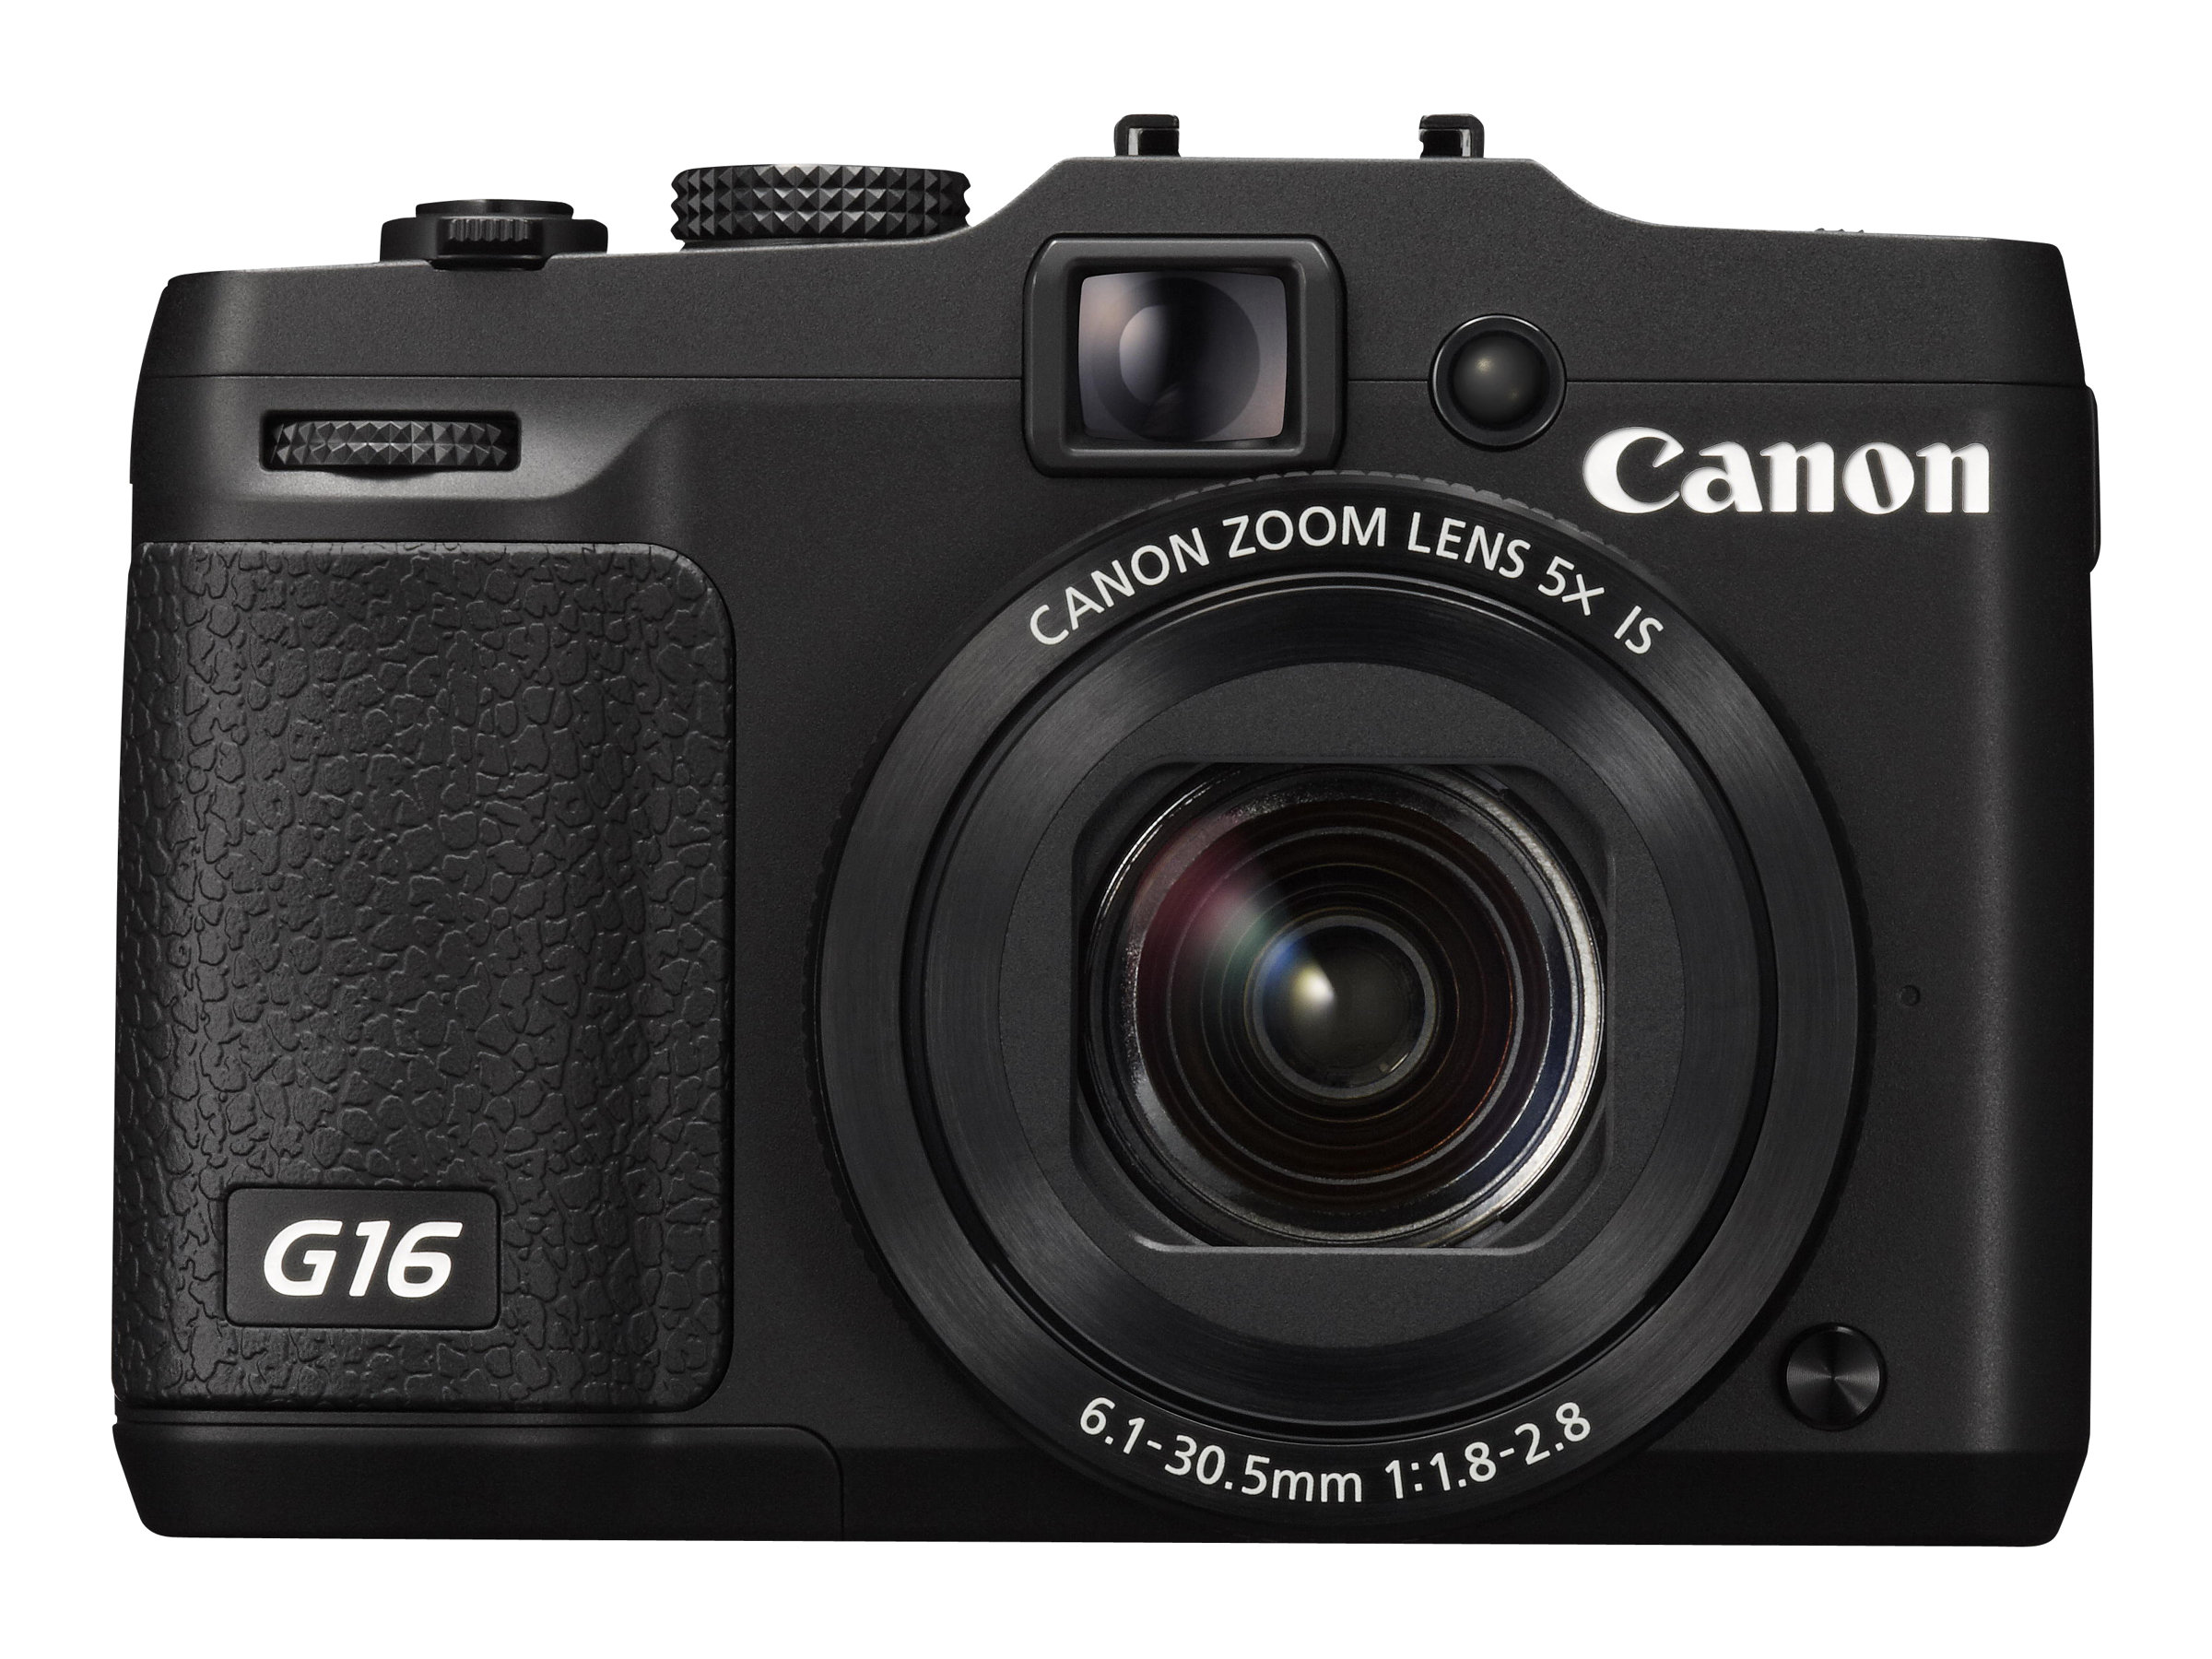 Canon Powershot G16 Camera, 12.1MP, Black